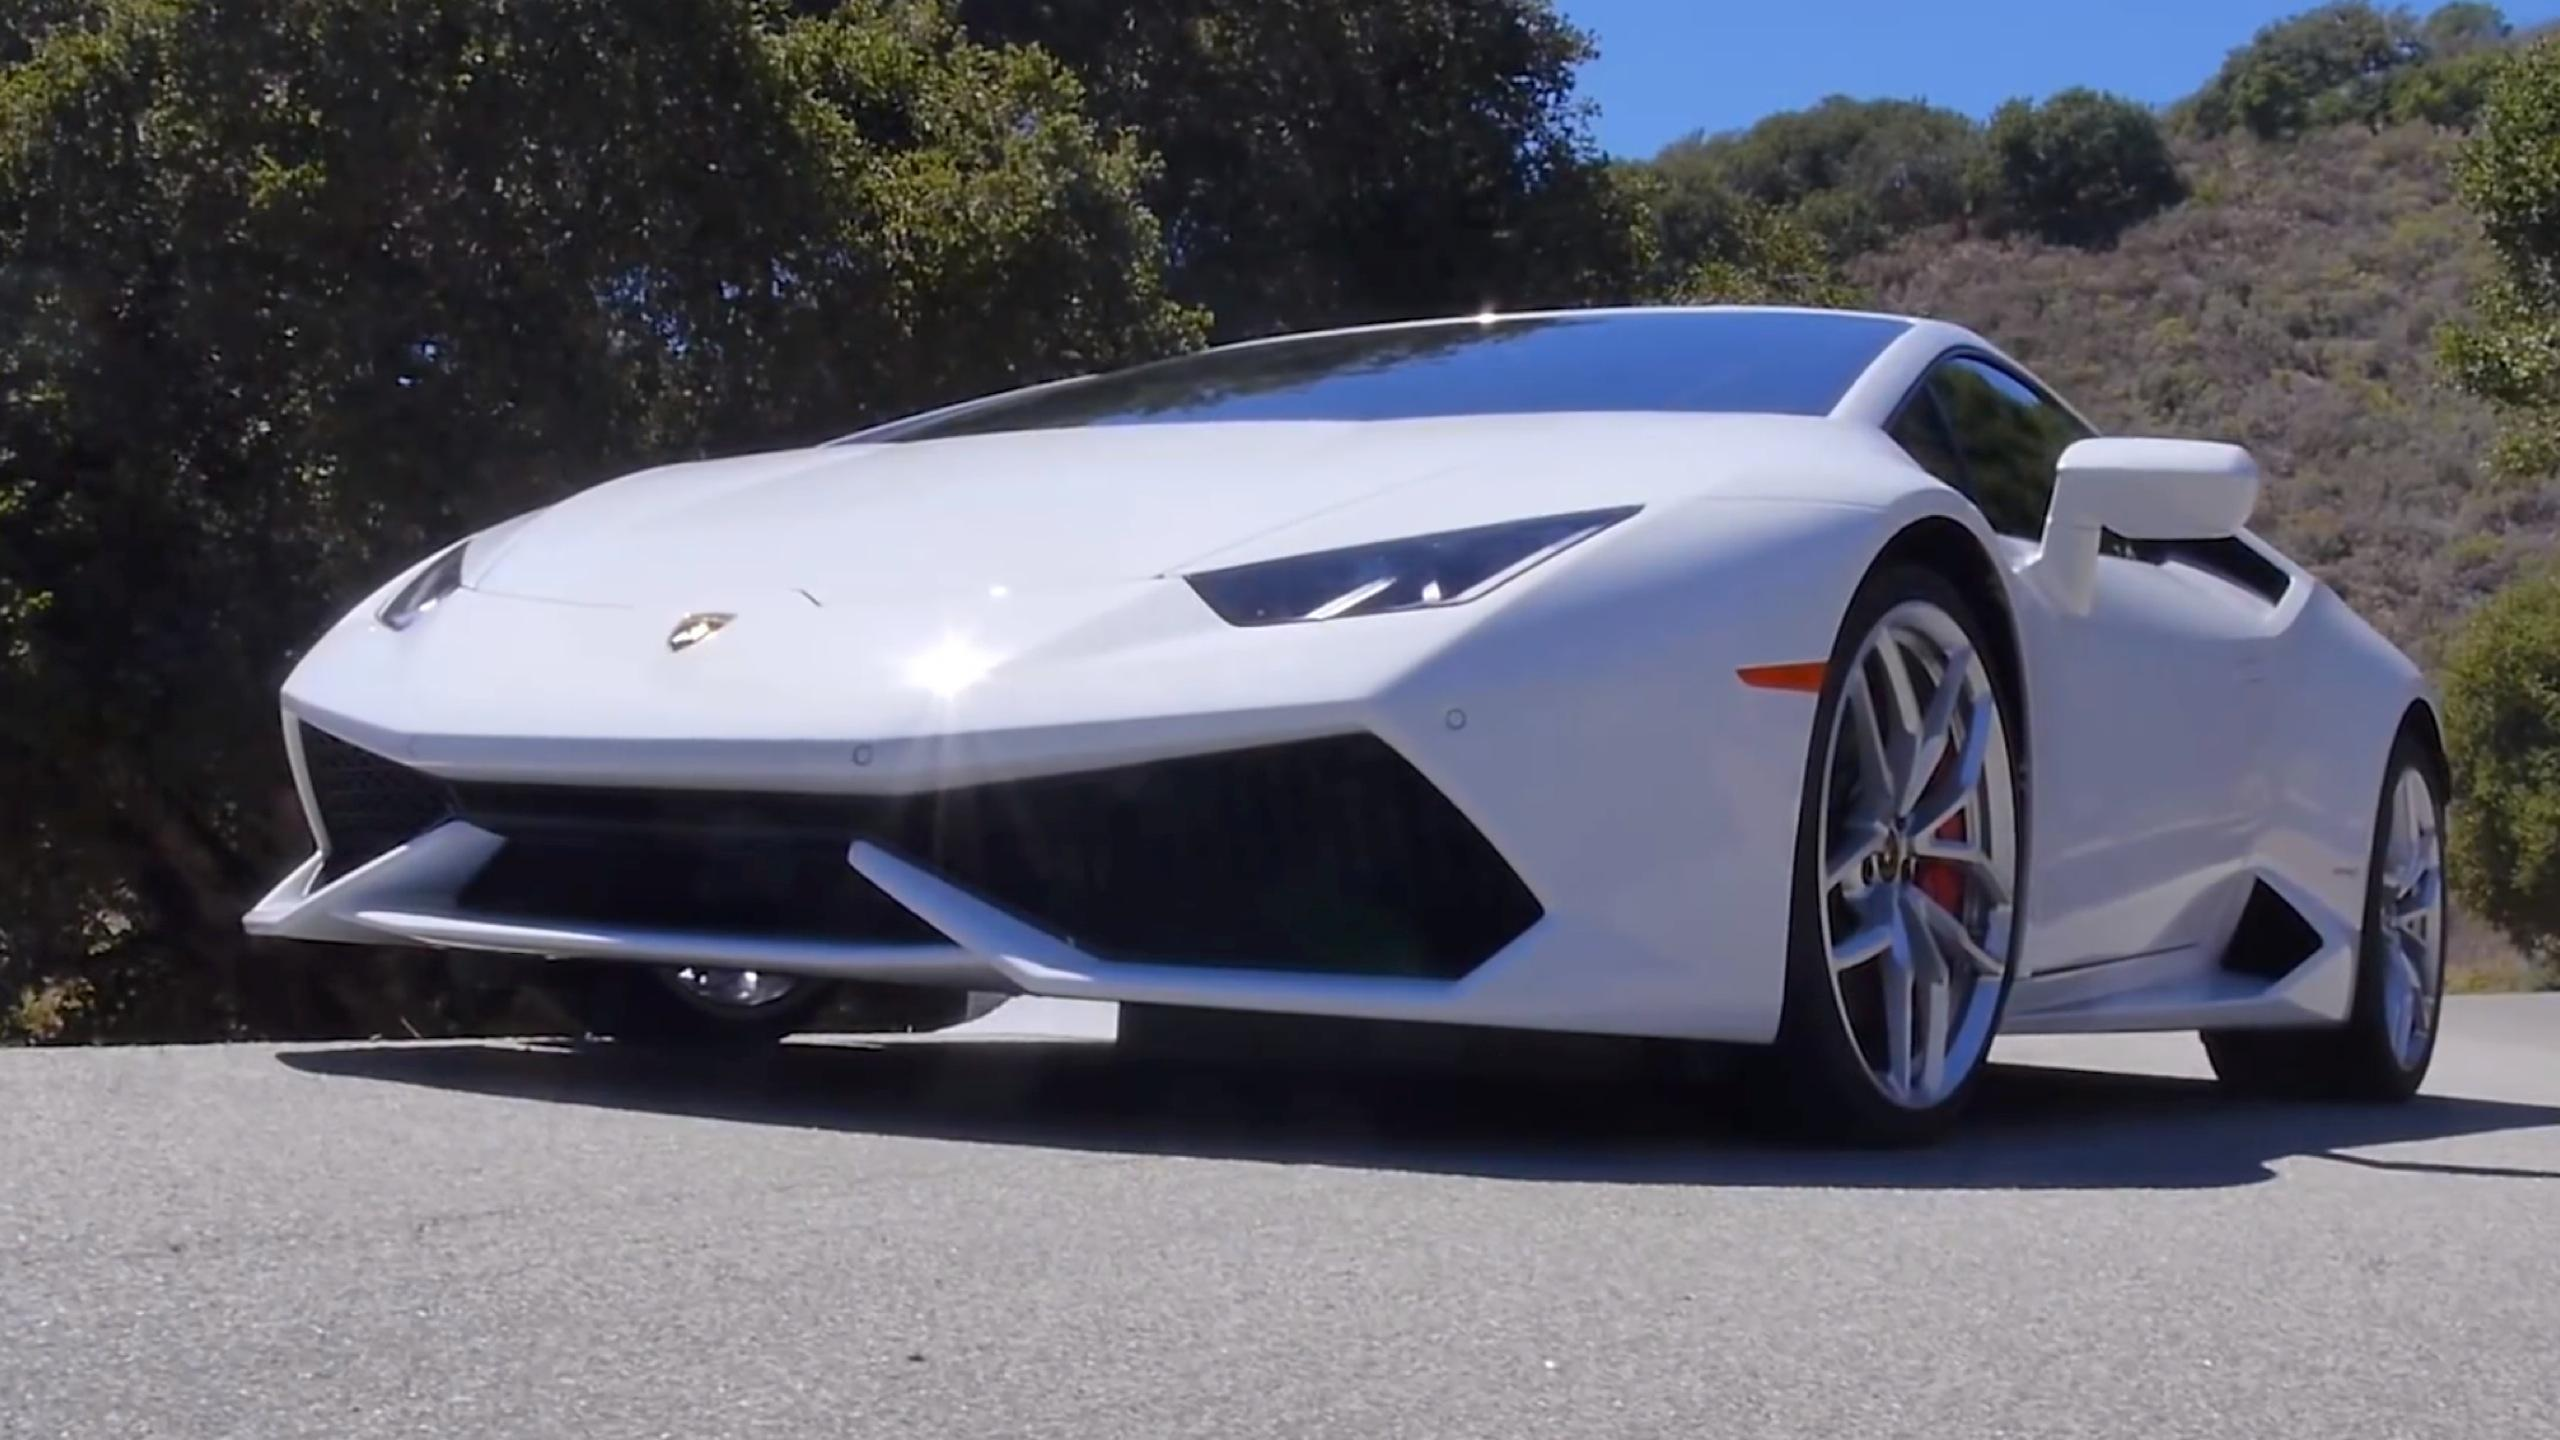 All New: The 2015 Lamborghini Huracan